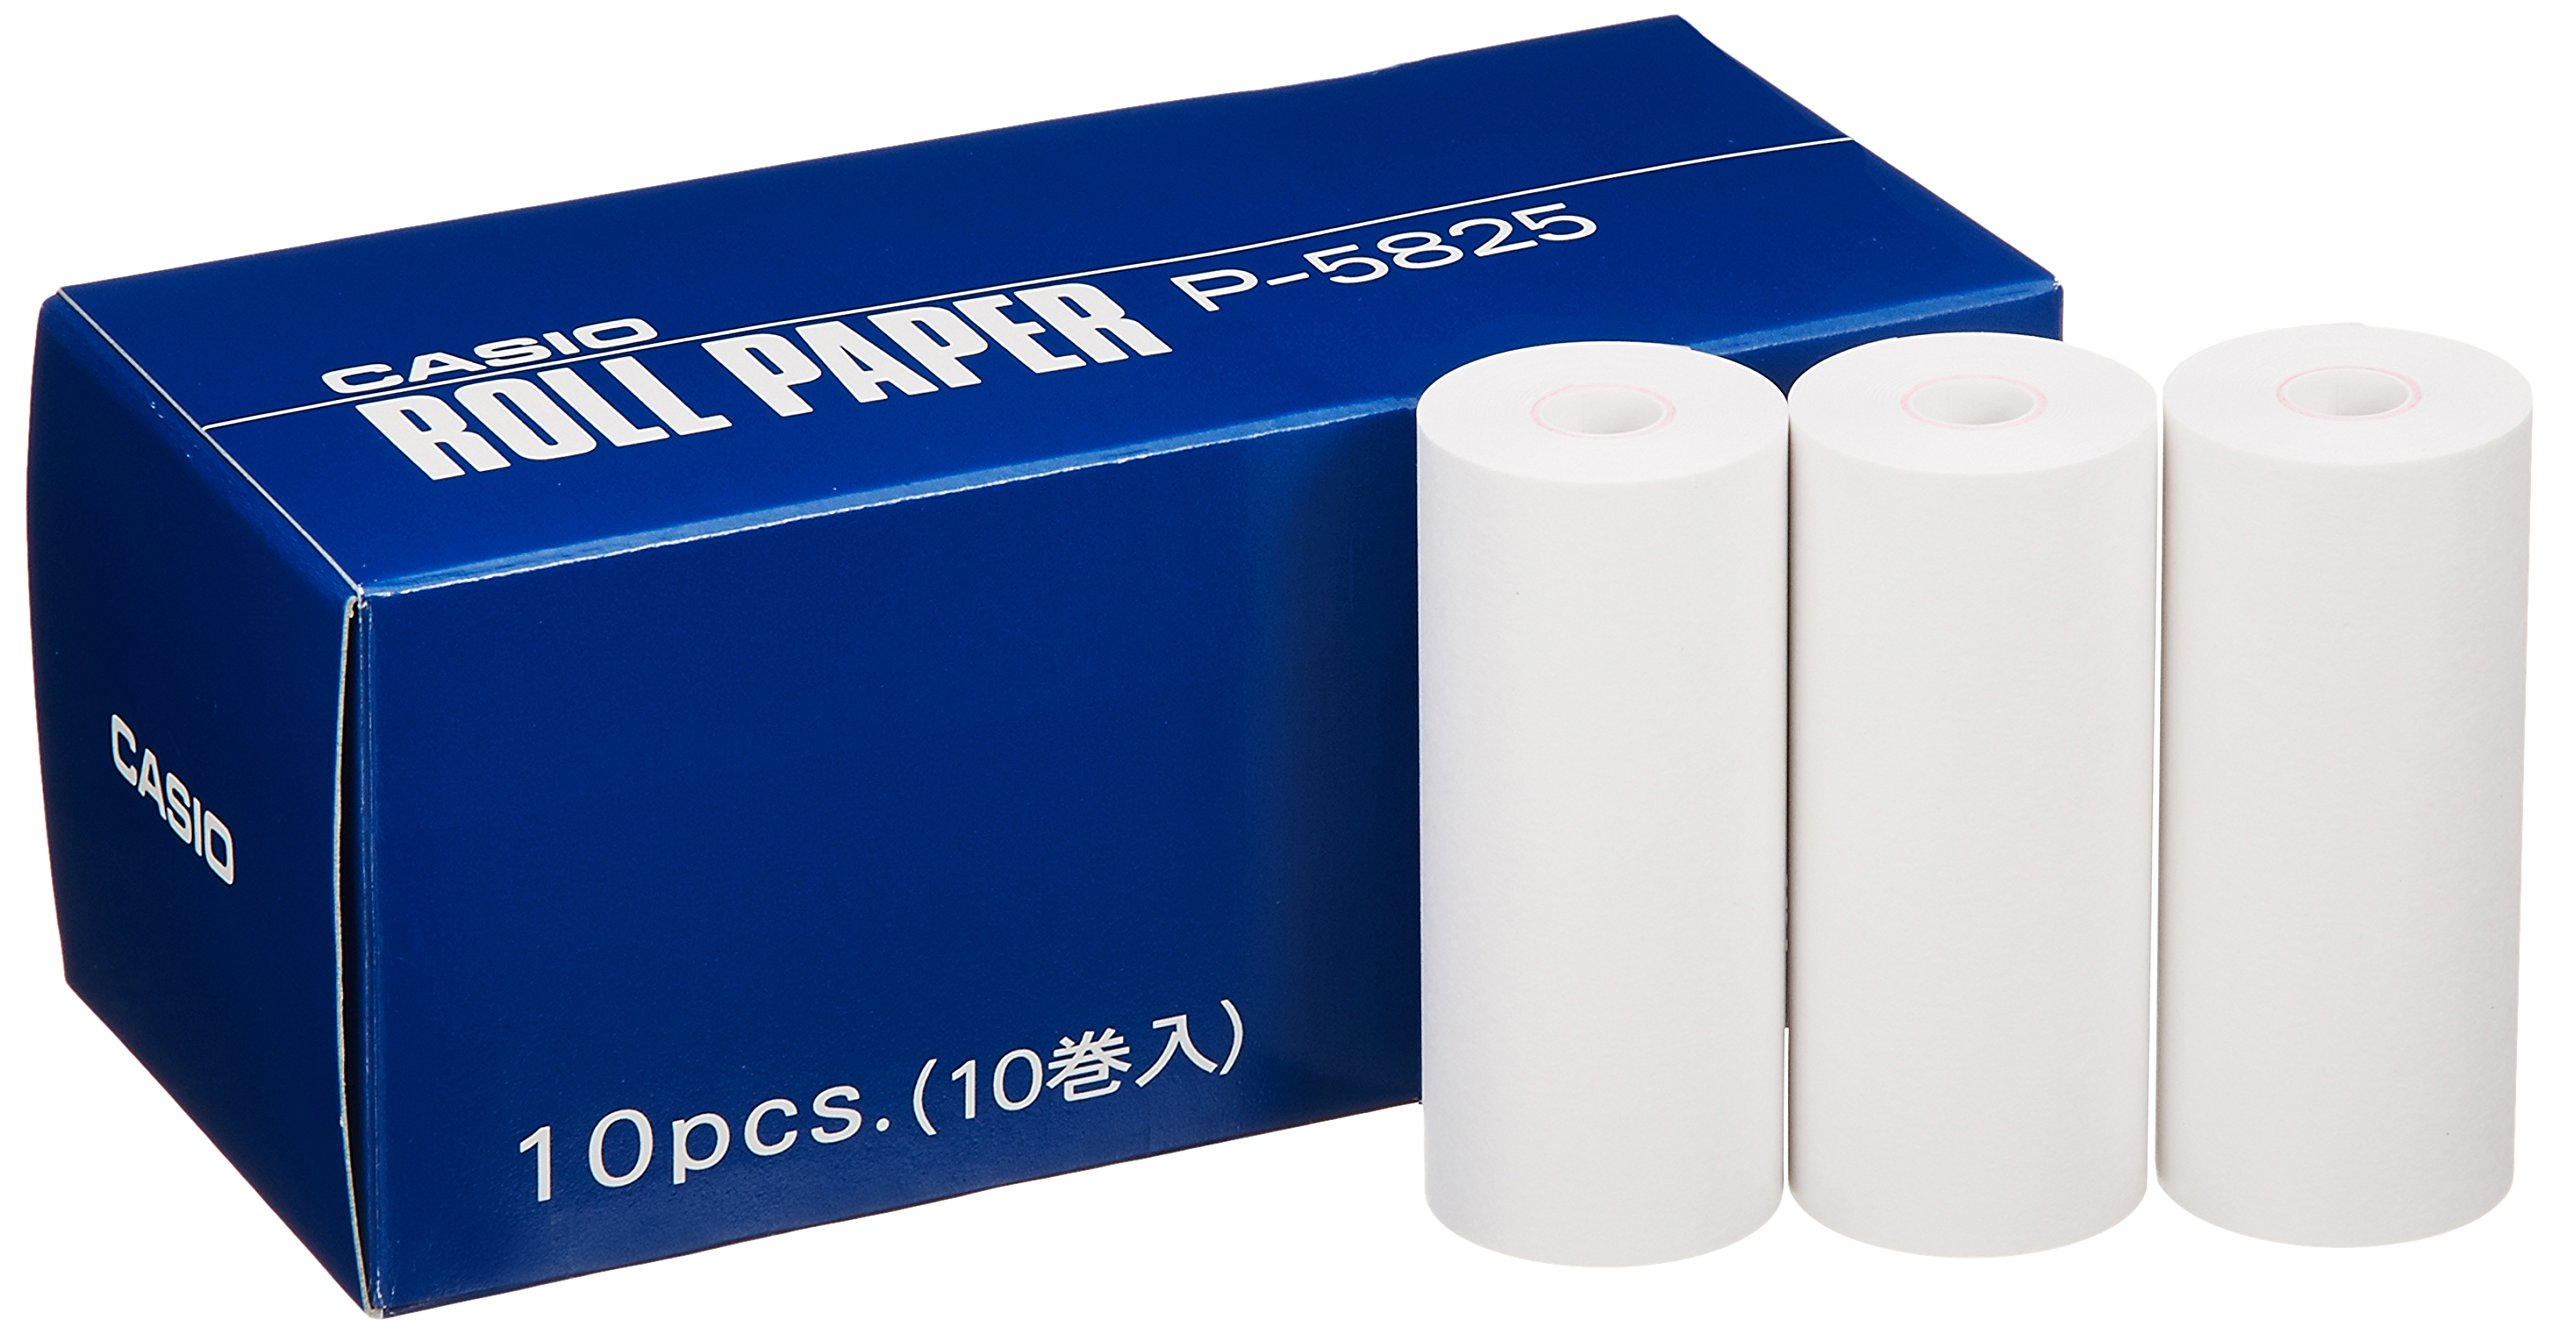 Casio Printer Calculator Roll Paper P-5825-E